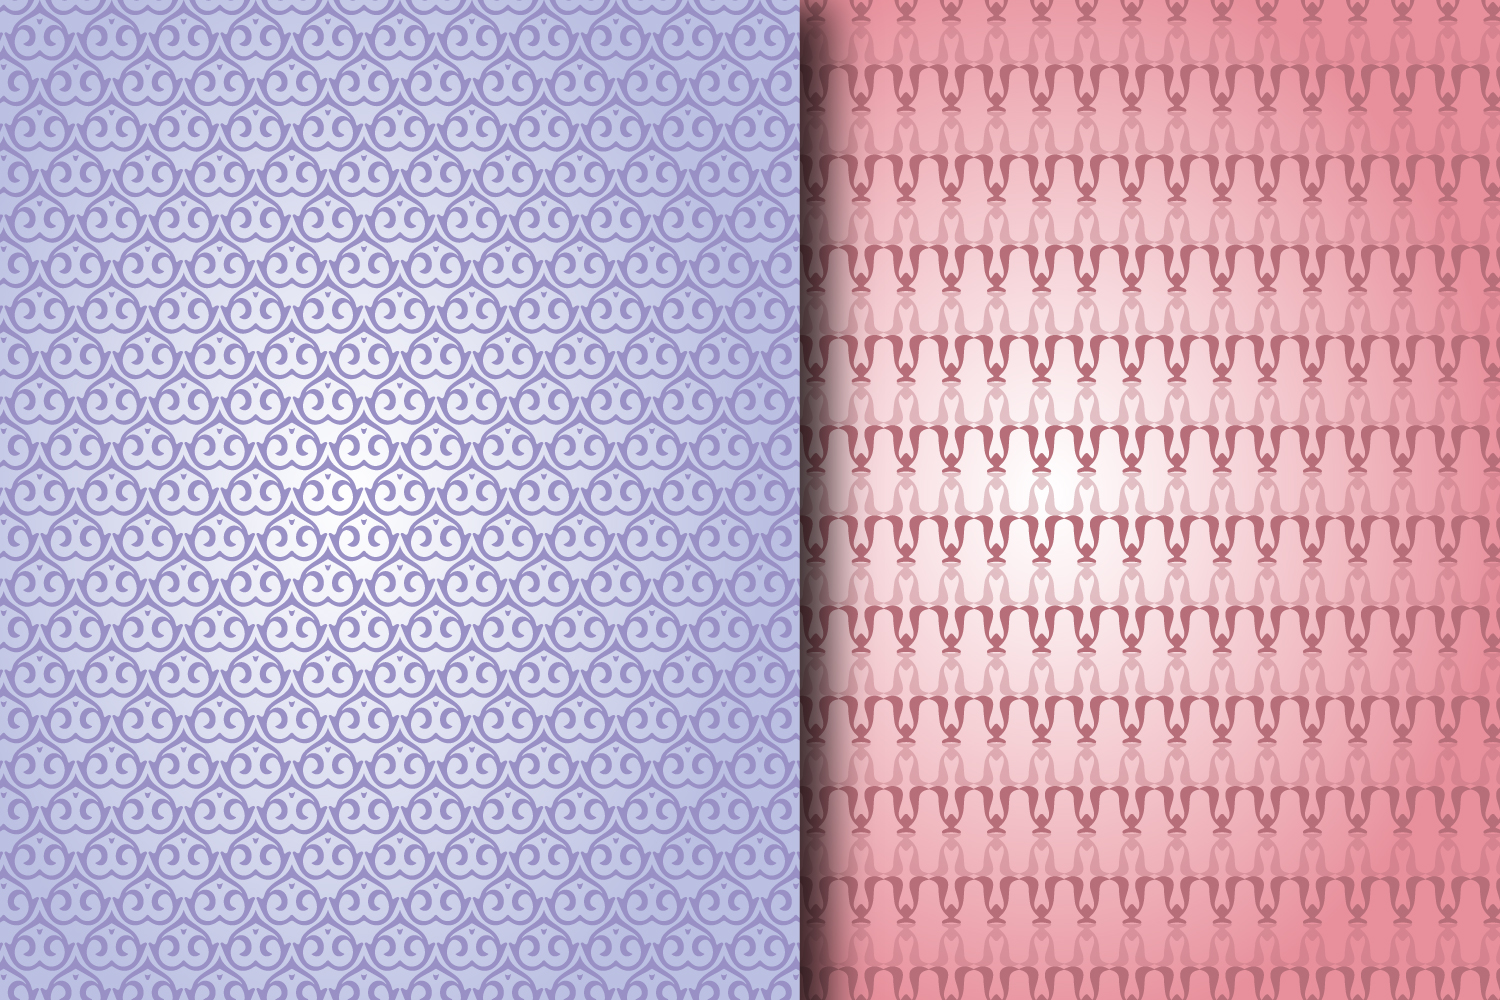 ISLAMIC PATTERN DIGITAL PAPERS example image 3